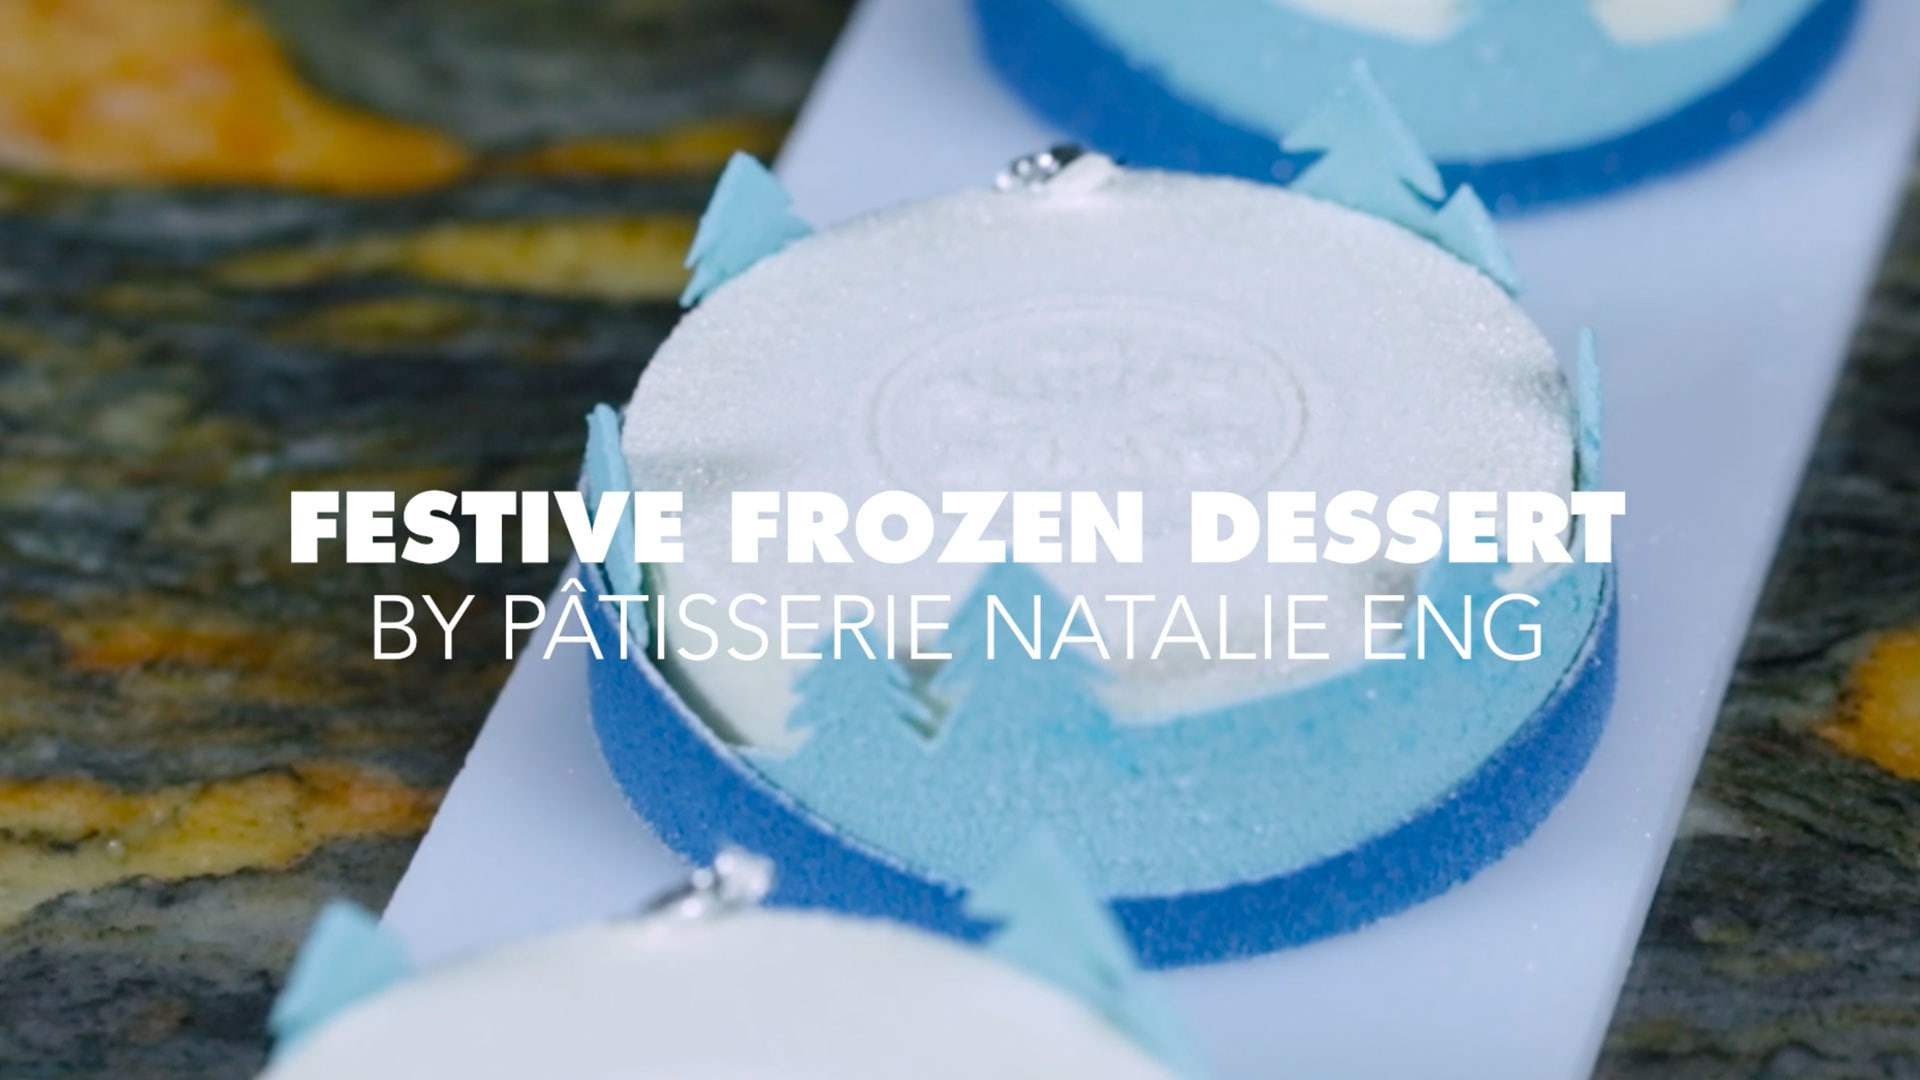 Just How Magical Is This Frozen-Inspired Artisanal Dessert?